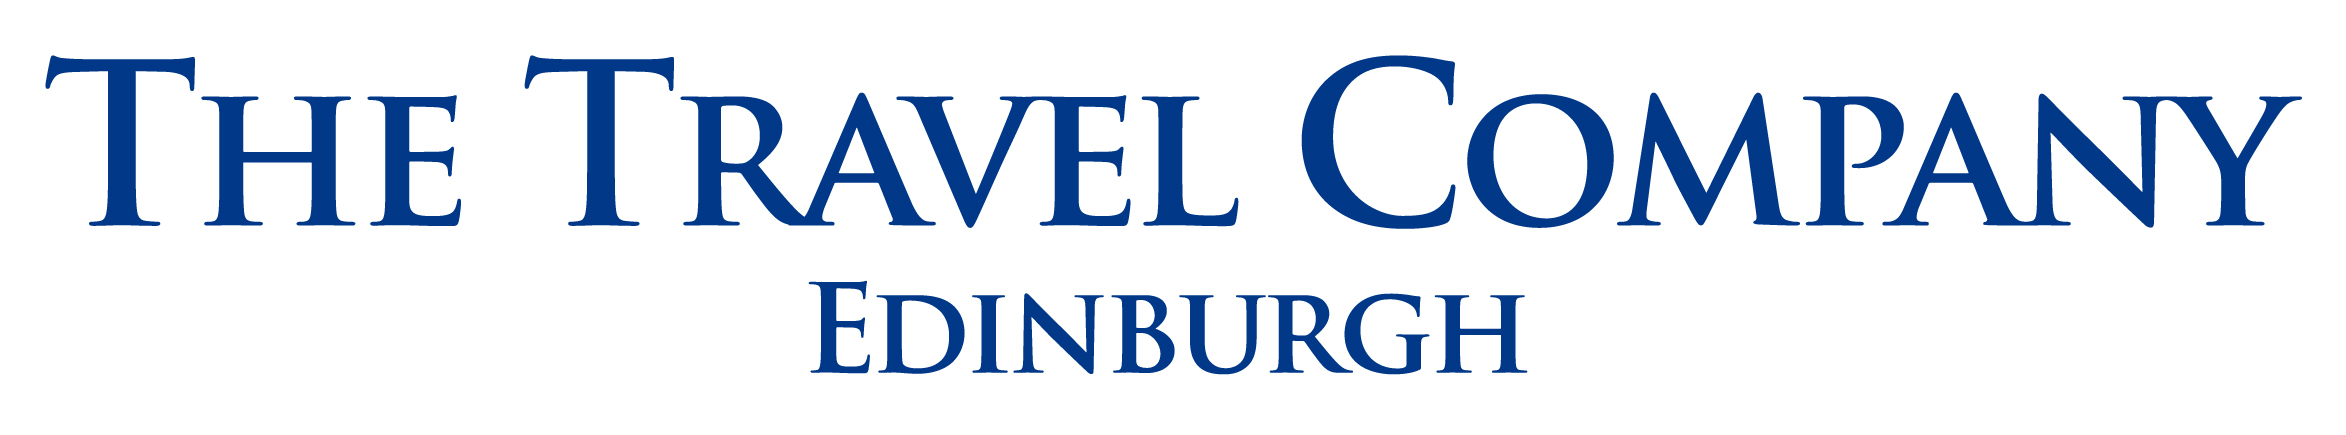 The Travel Company Edinburgh